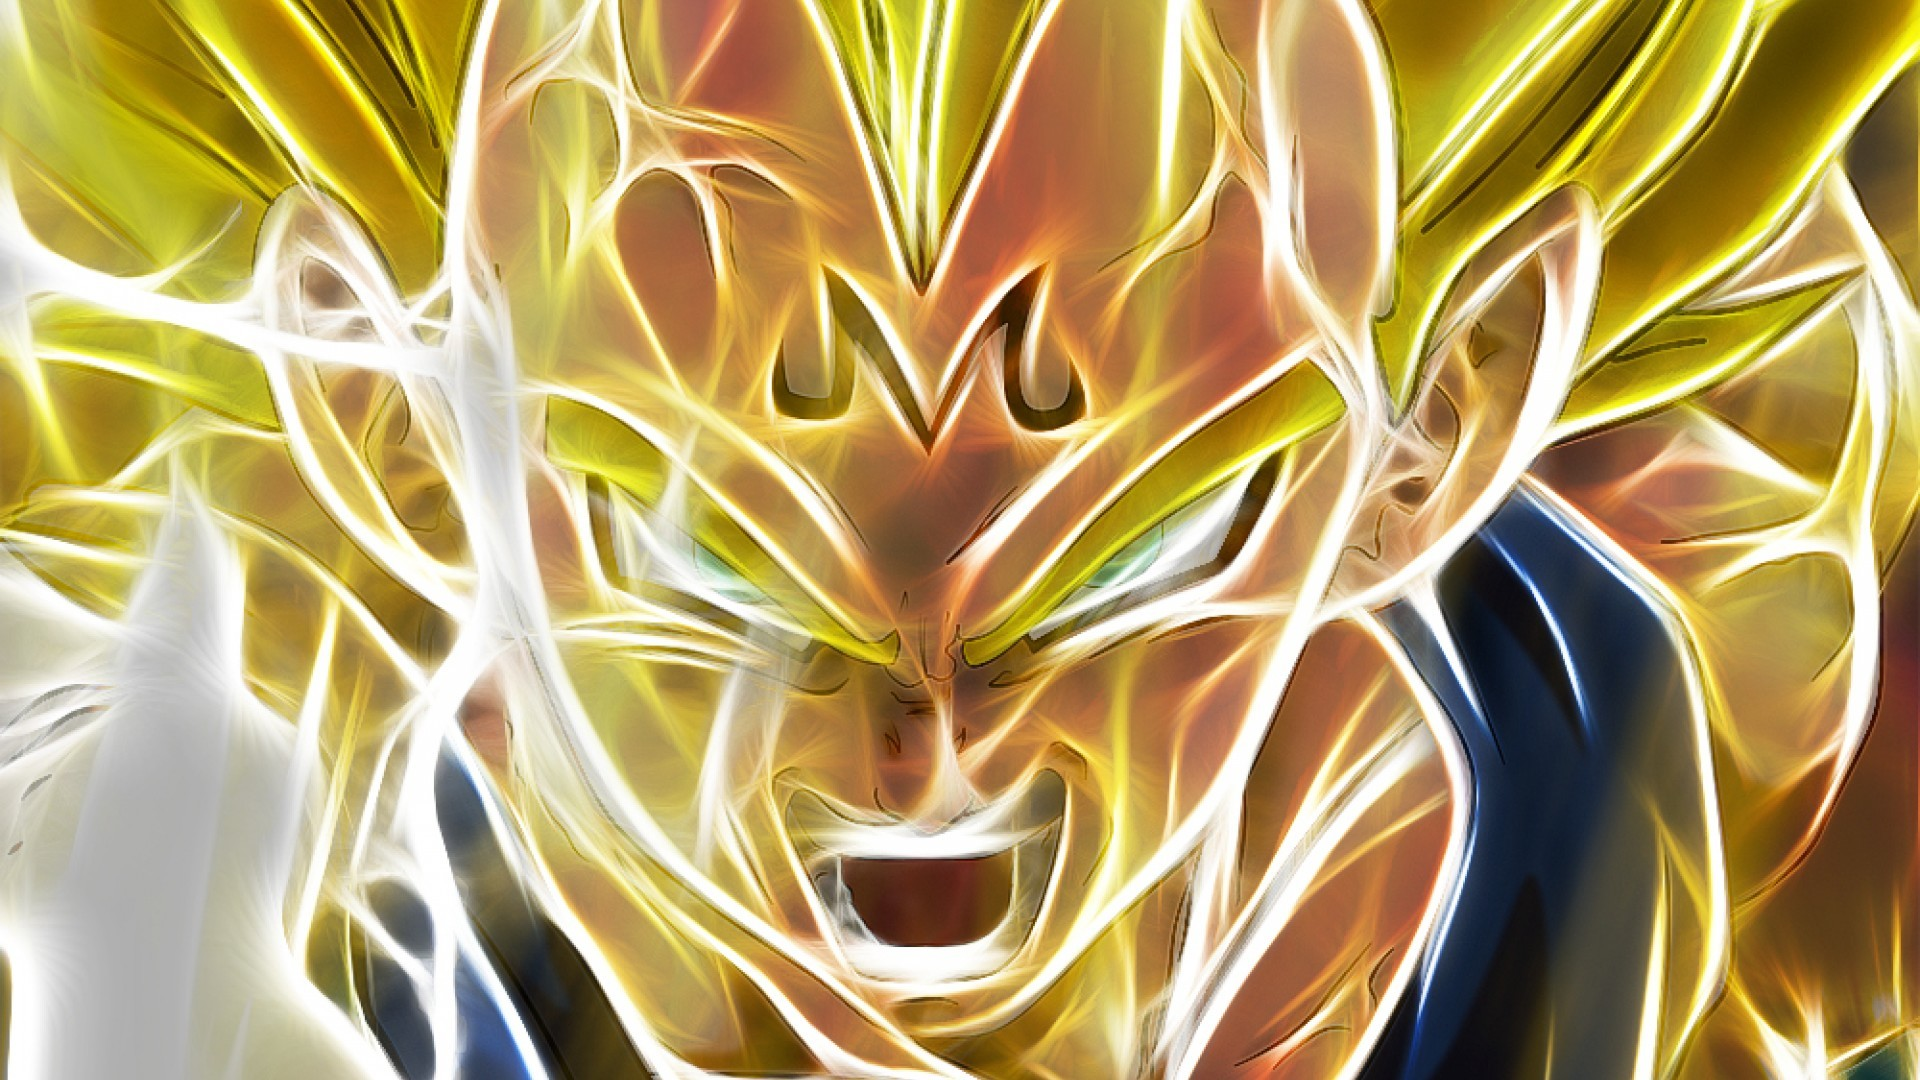 Vegeta hd wallpapers 69 images - Dragon ball z majin vegeta wallpaper ...